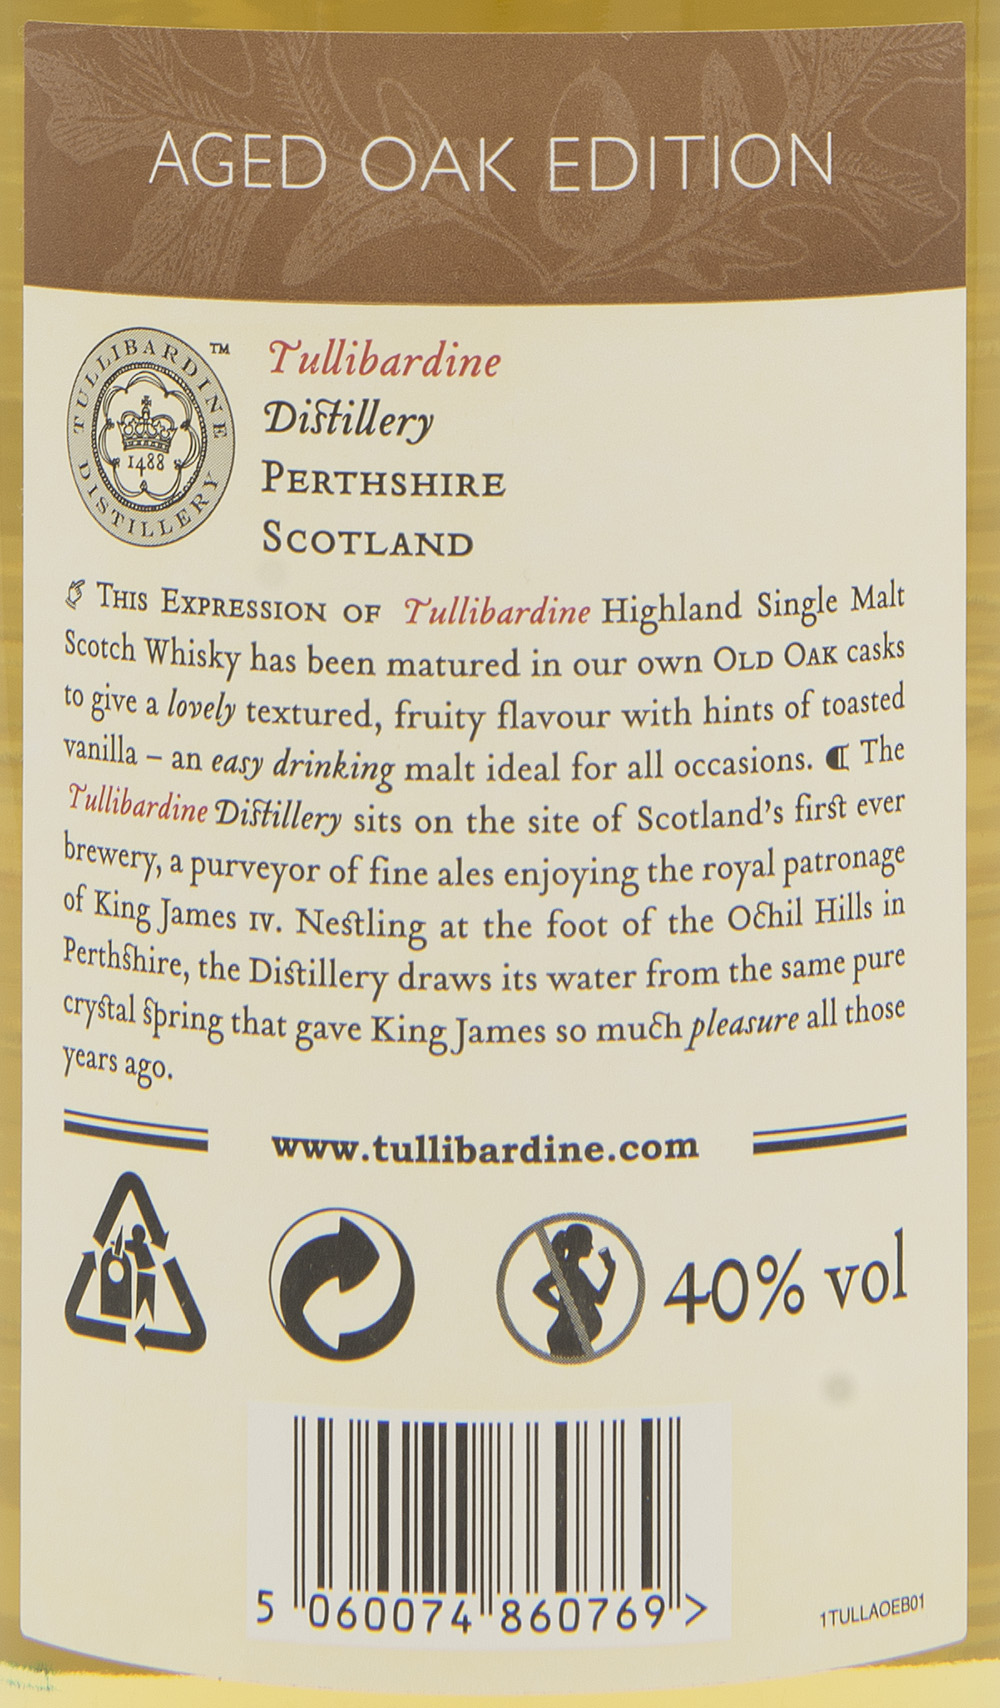 Billede: DSC_3736 Tullibardine Aged Oak Edition - bottle back label.jpg